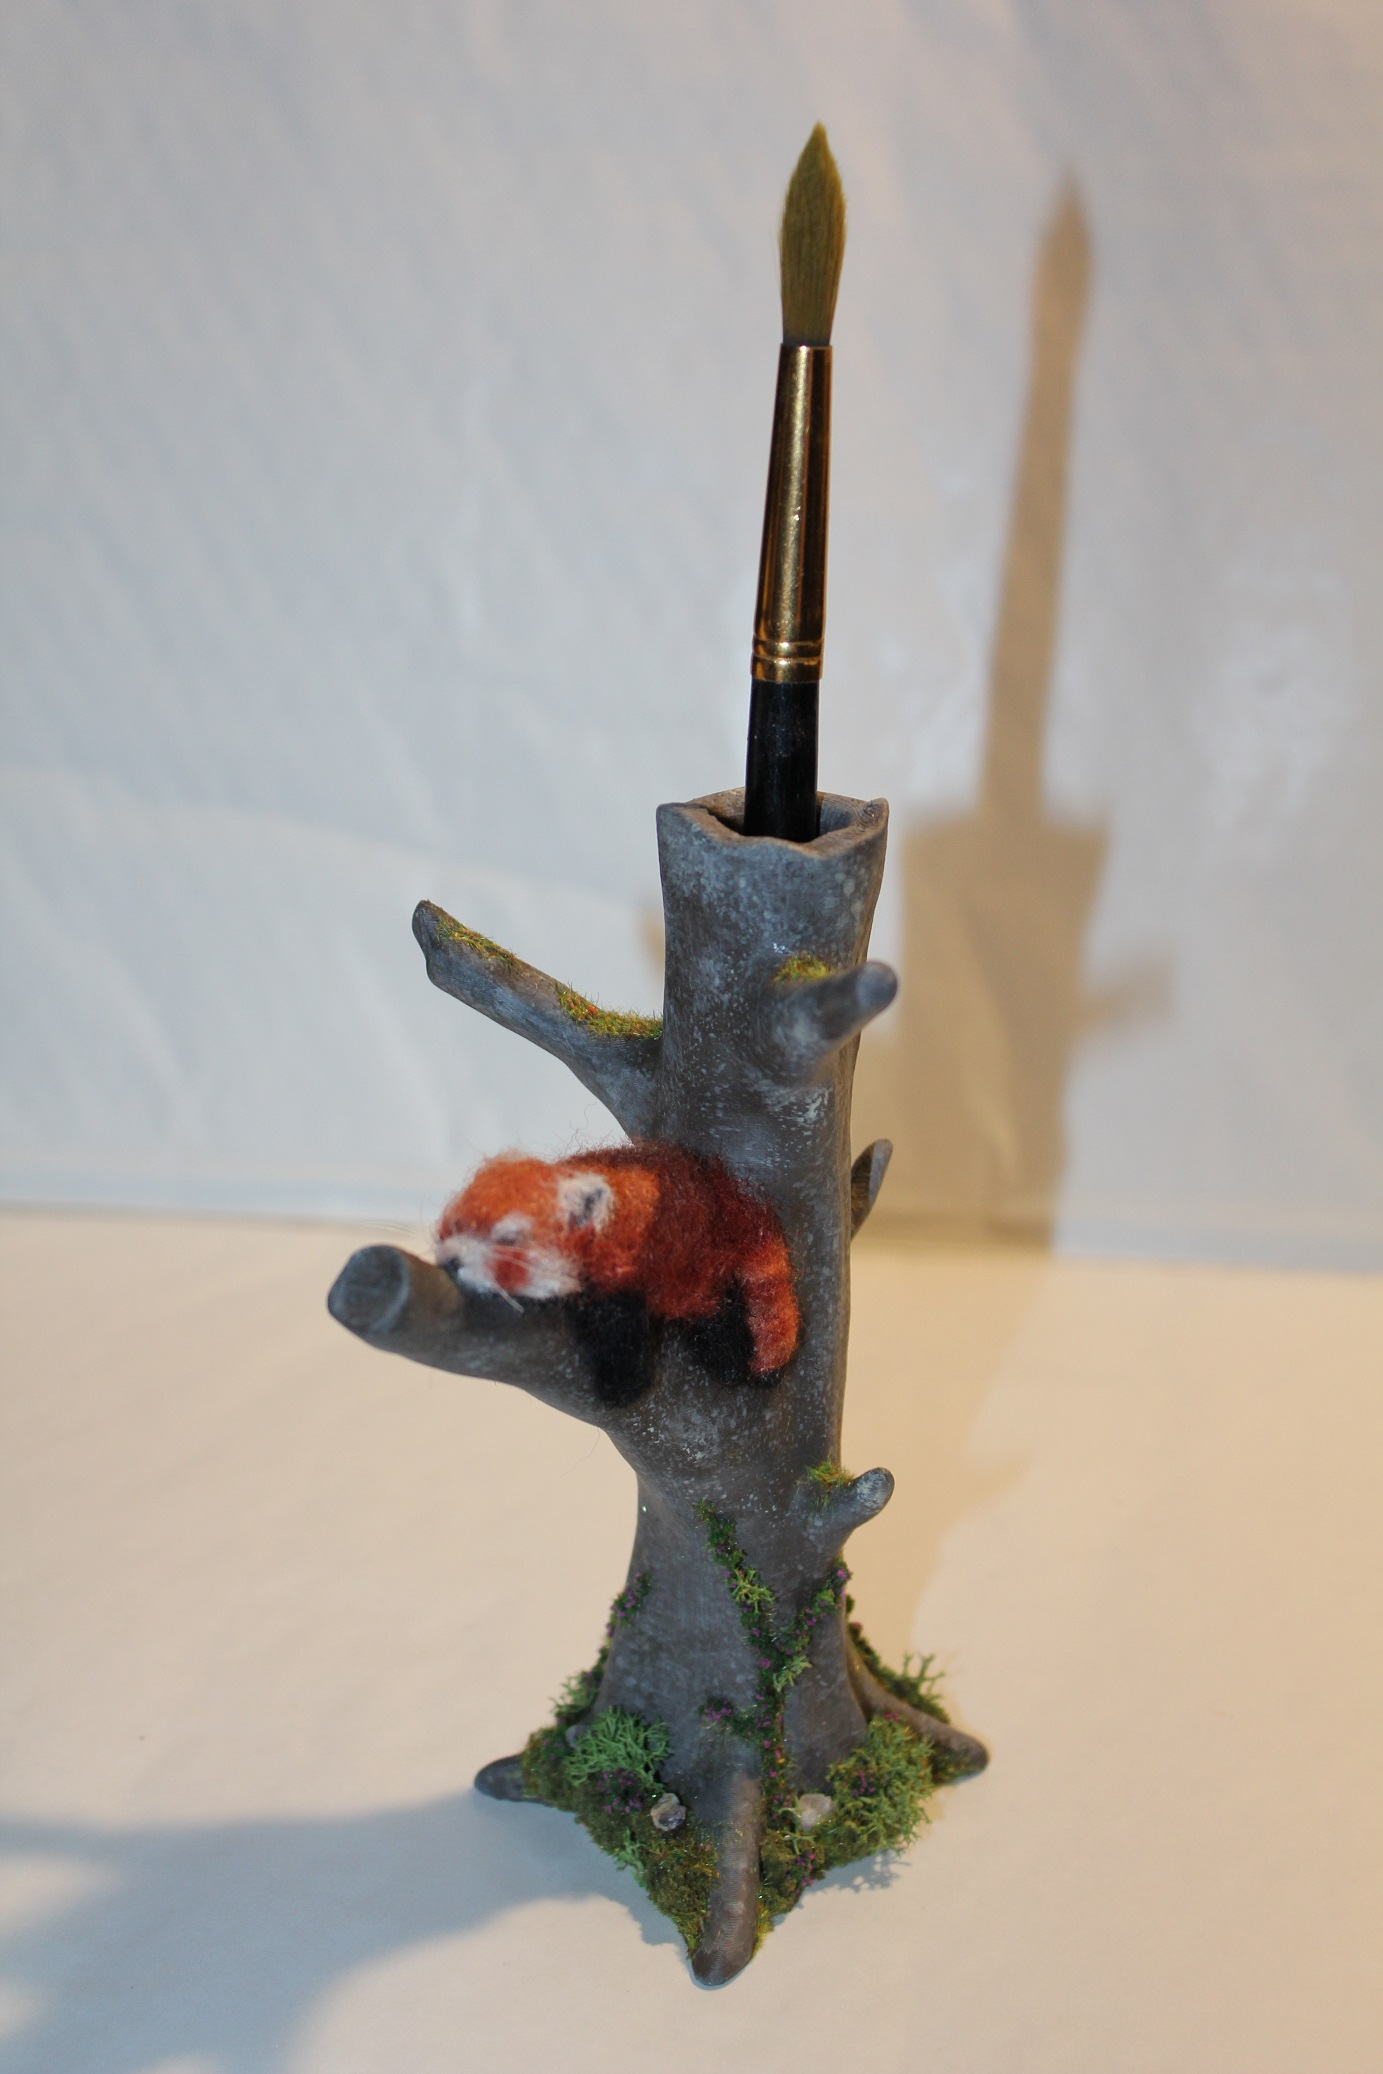 3D Printable Red Panda Tree by Jukka Seppänen